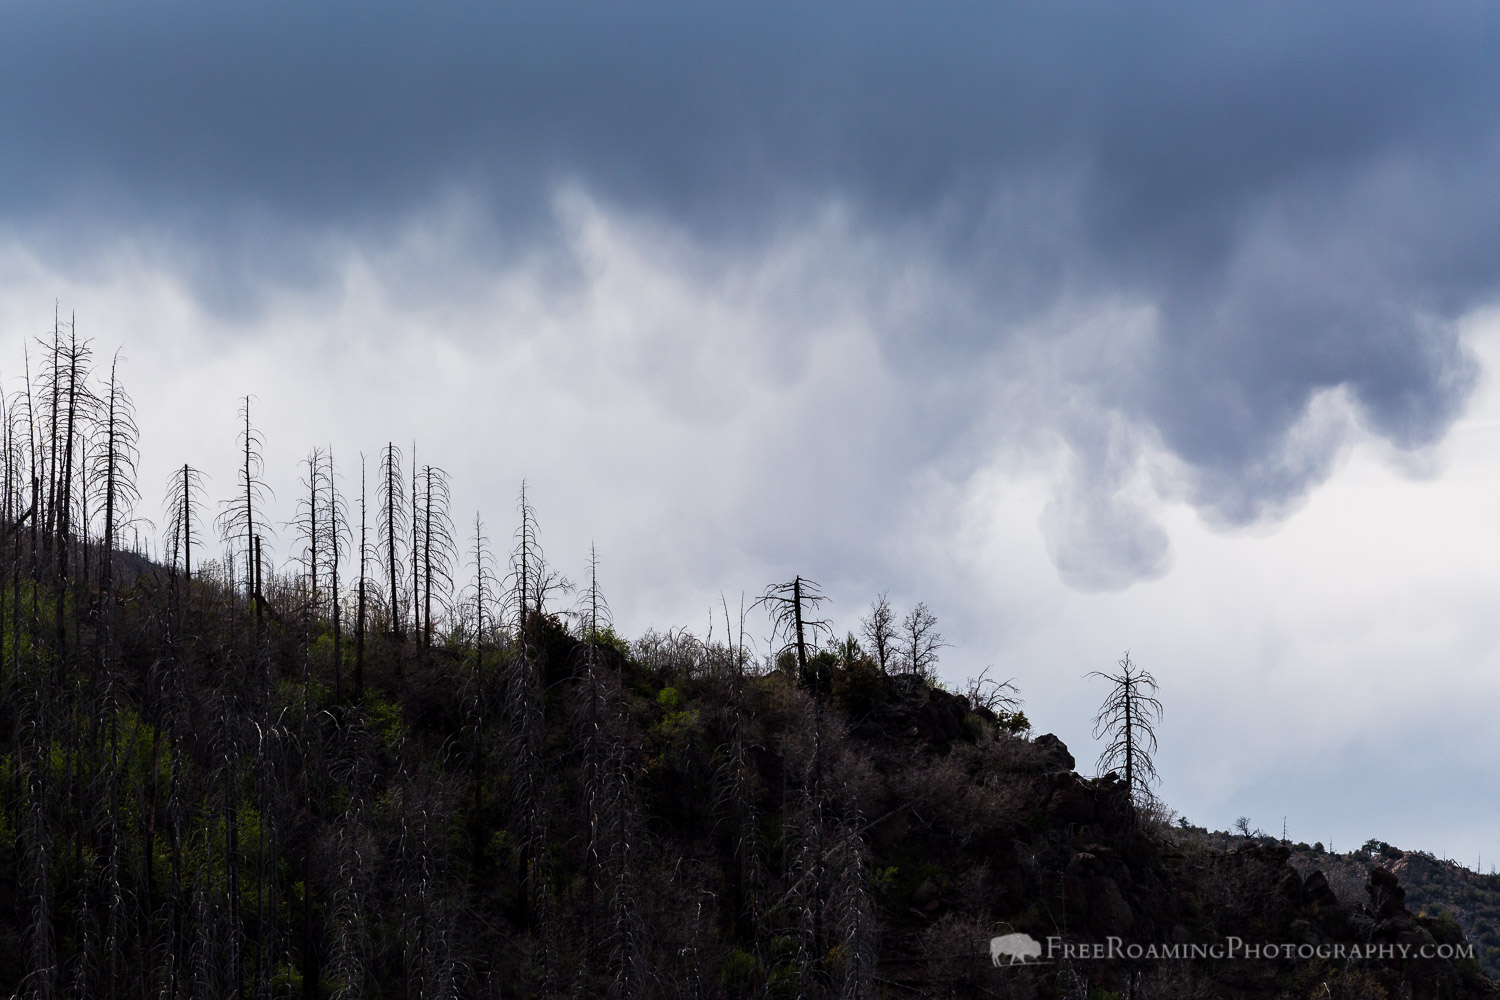 Storm Clouds over Burned Trees